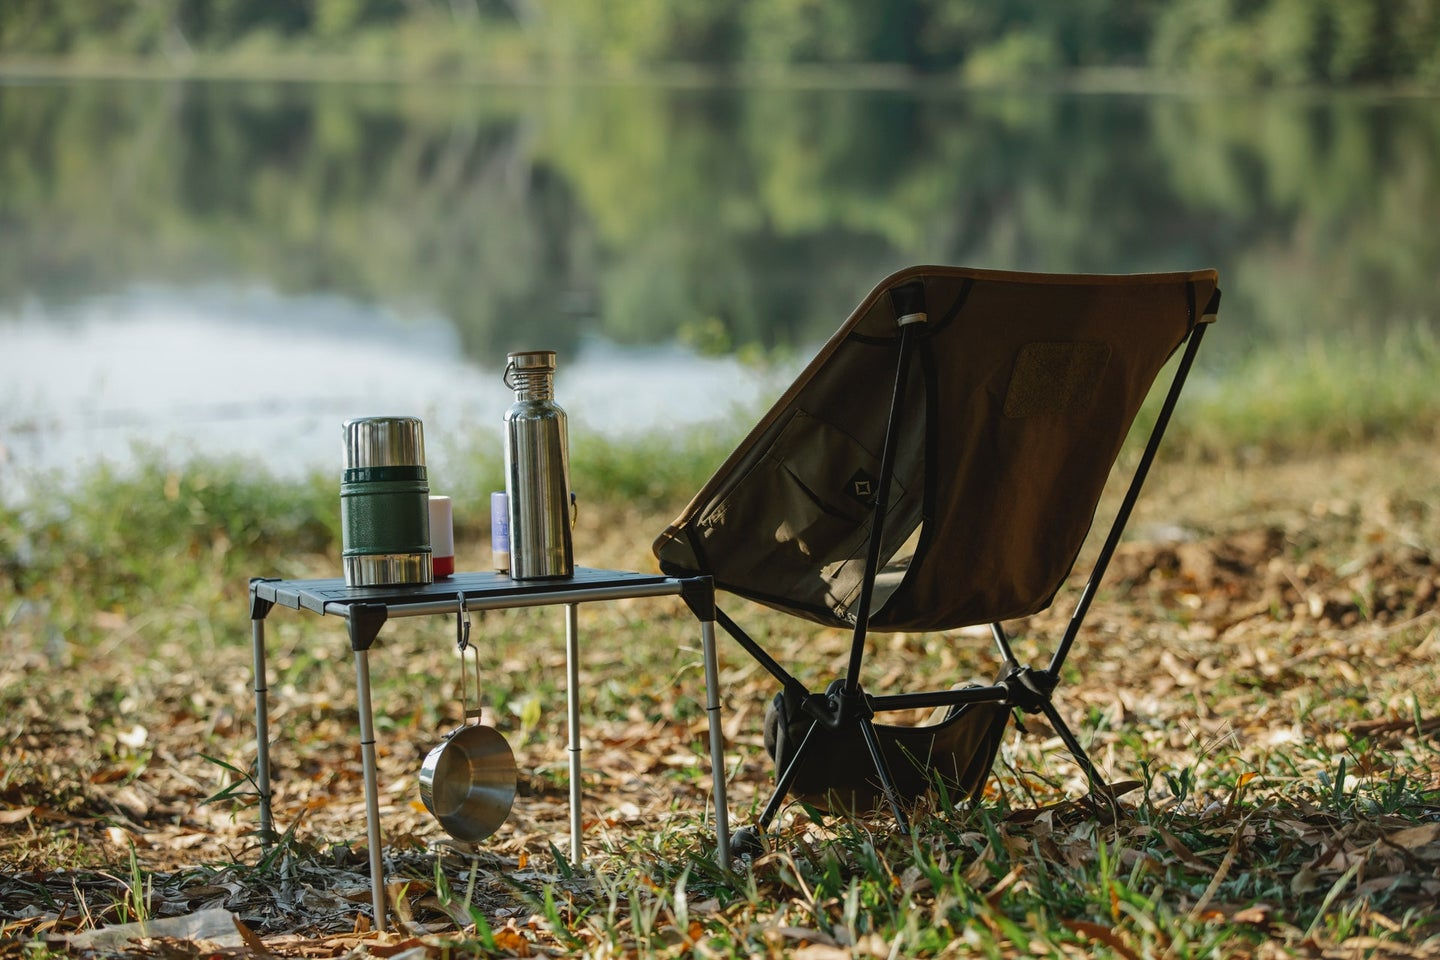 Folding table sitting outside in the nature